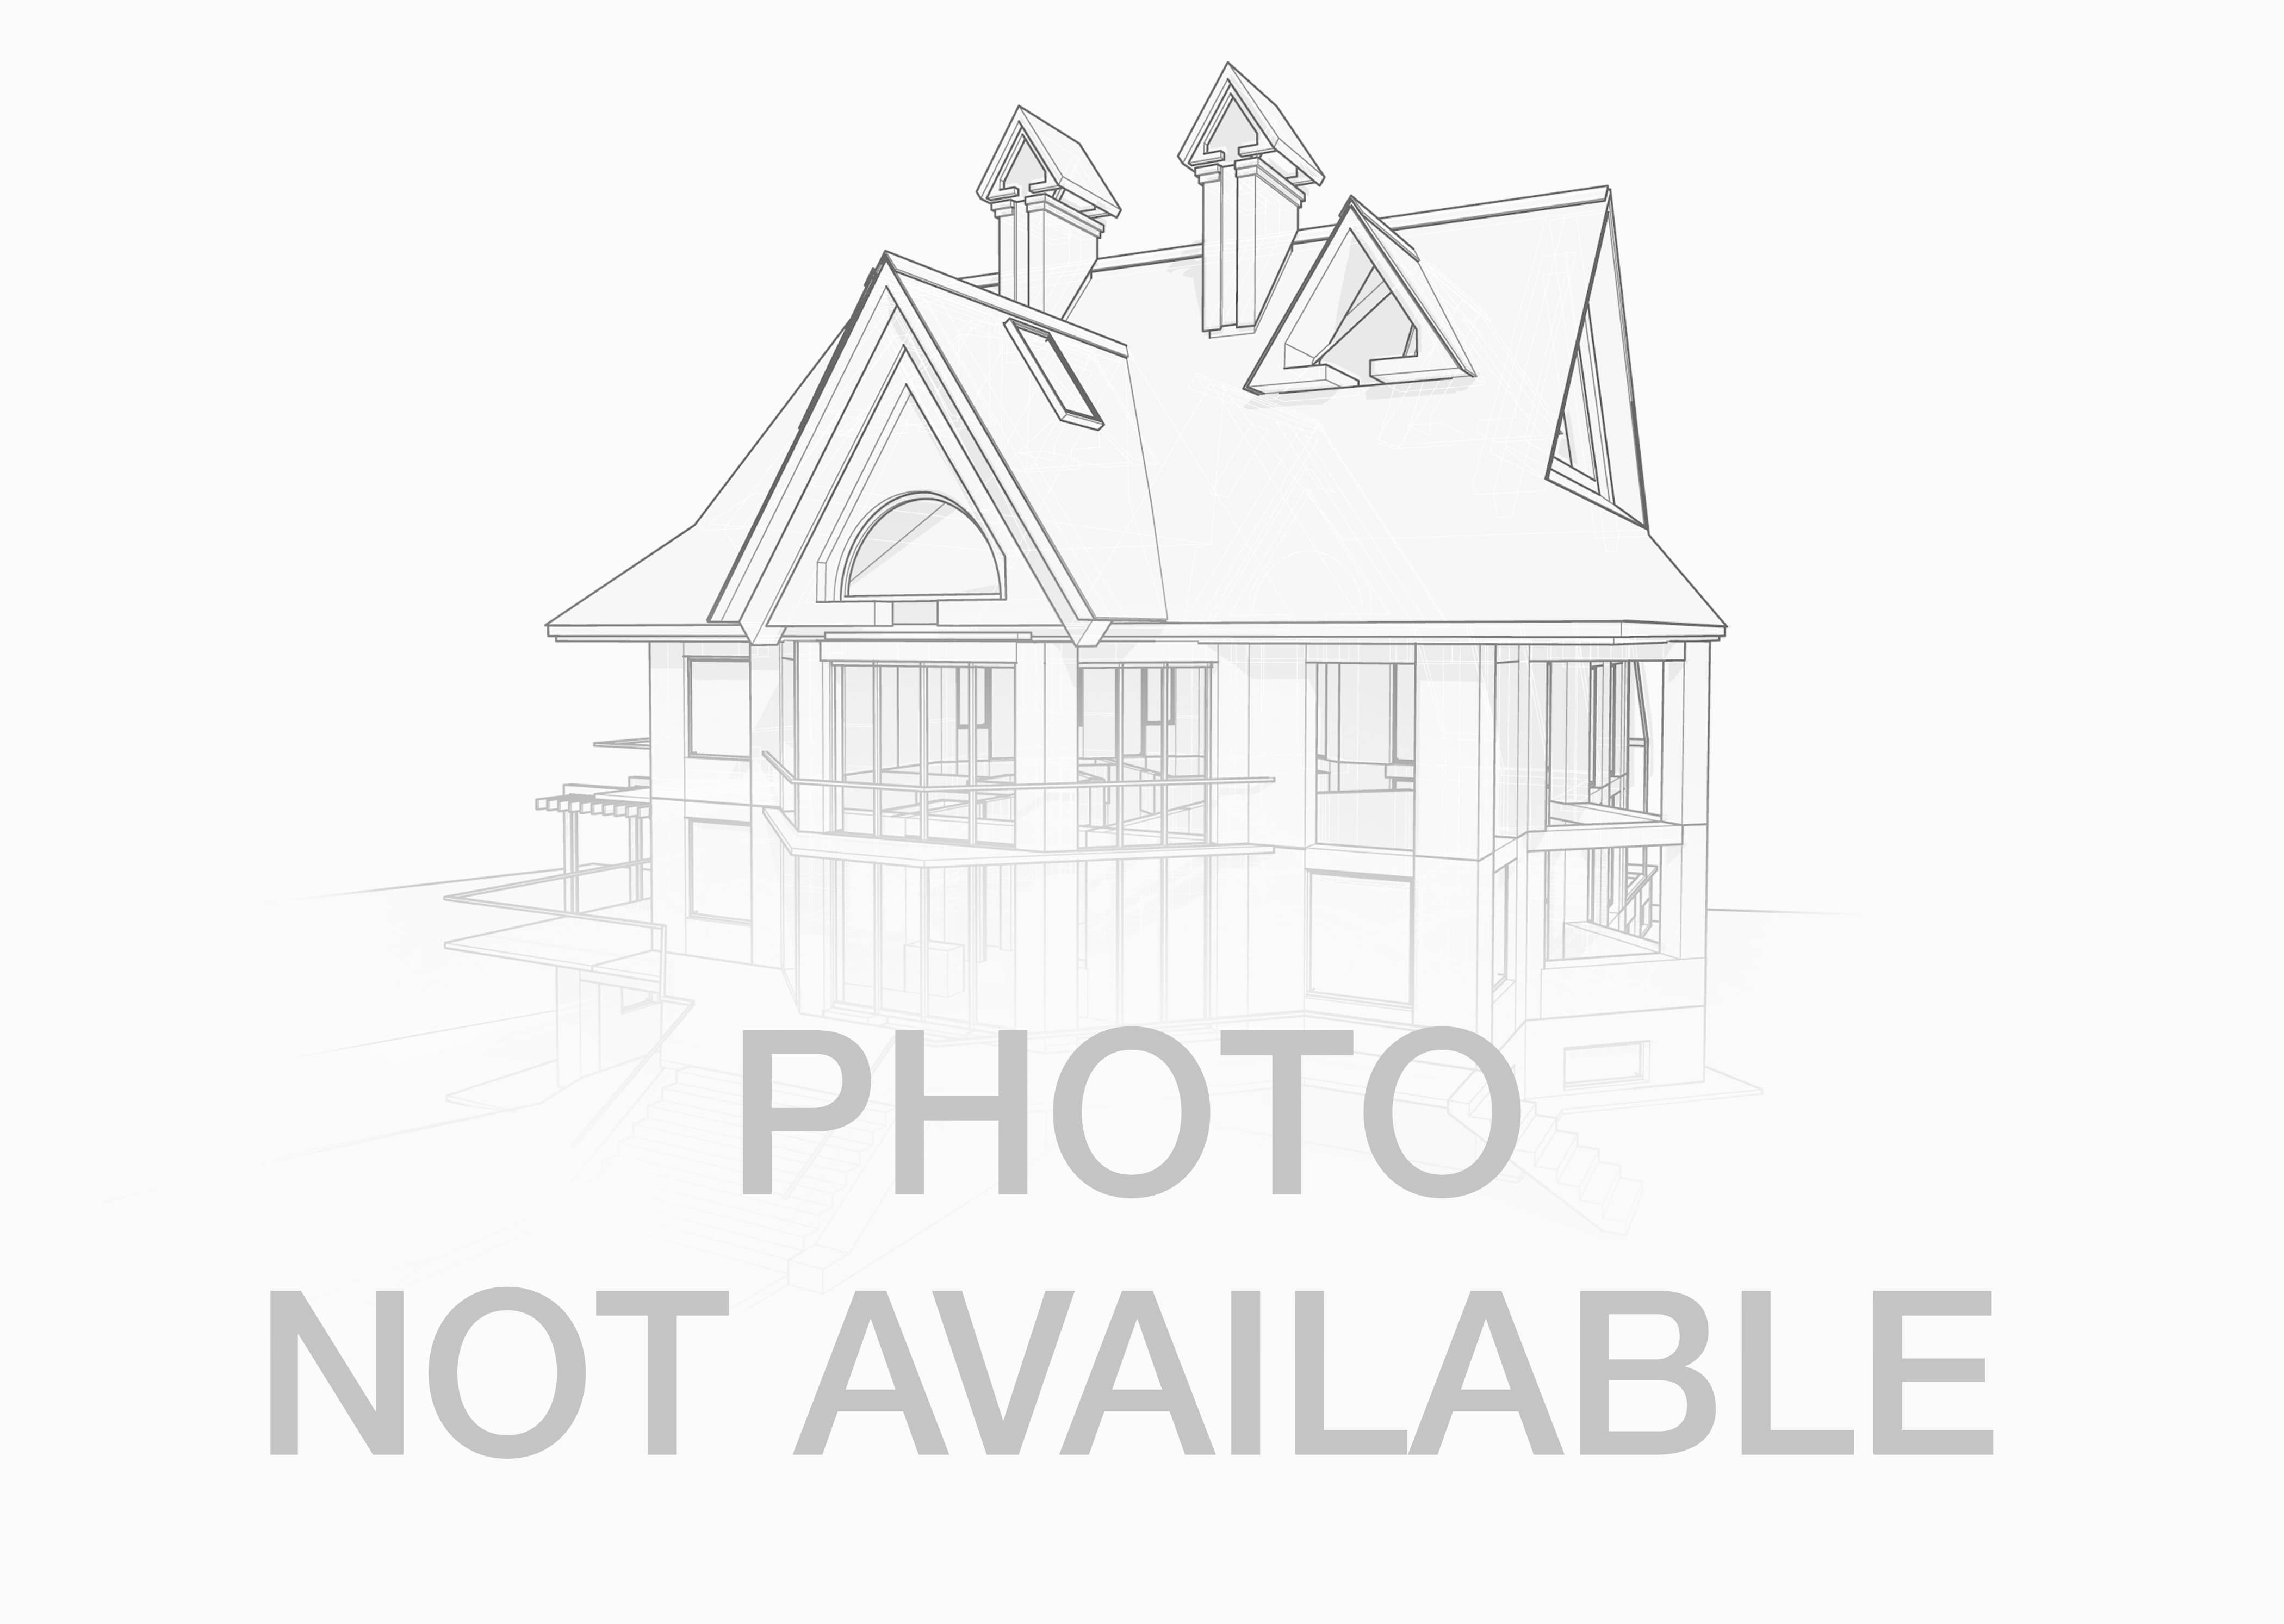 New Single Family Homes Anne Arundel County